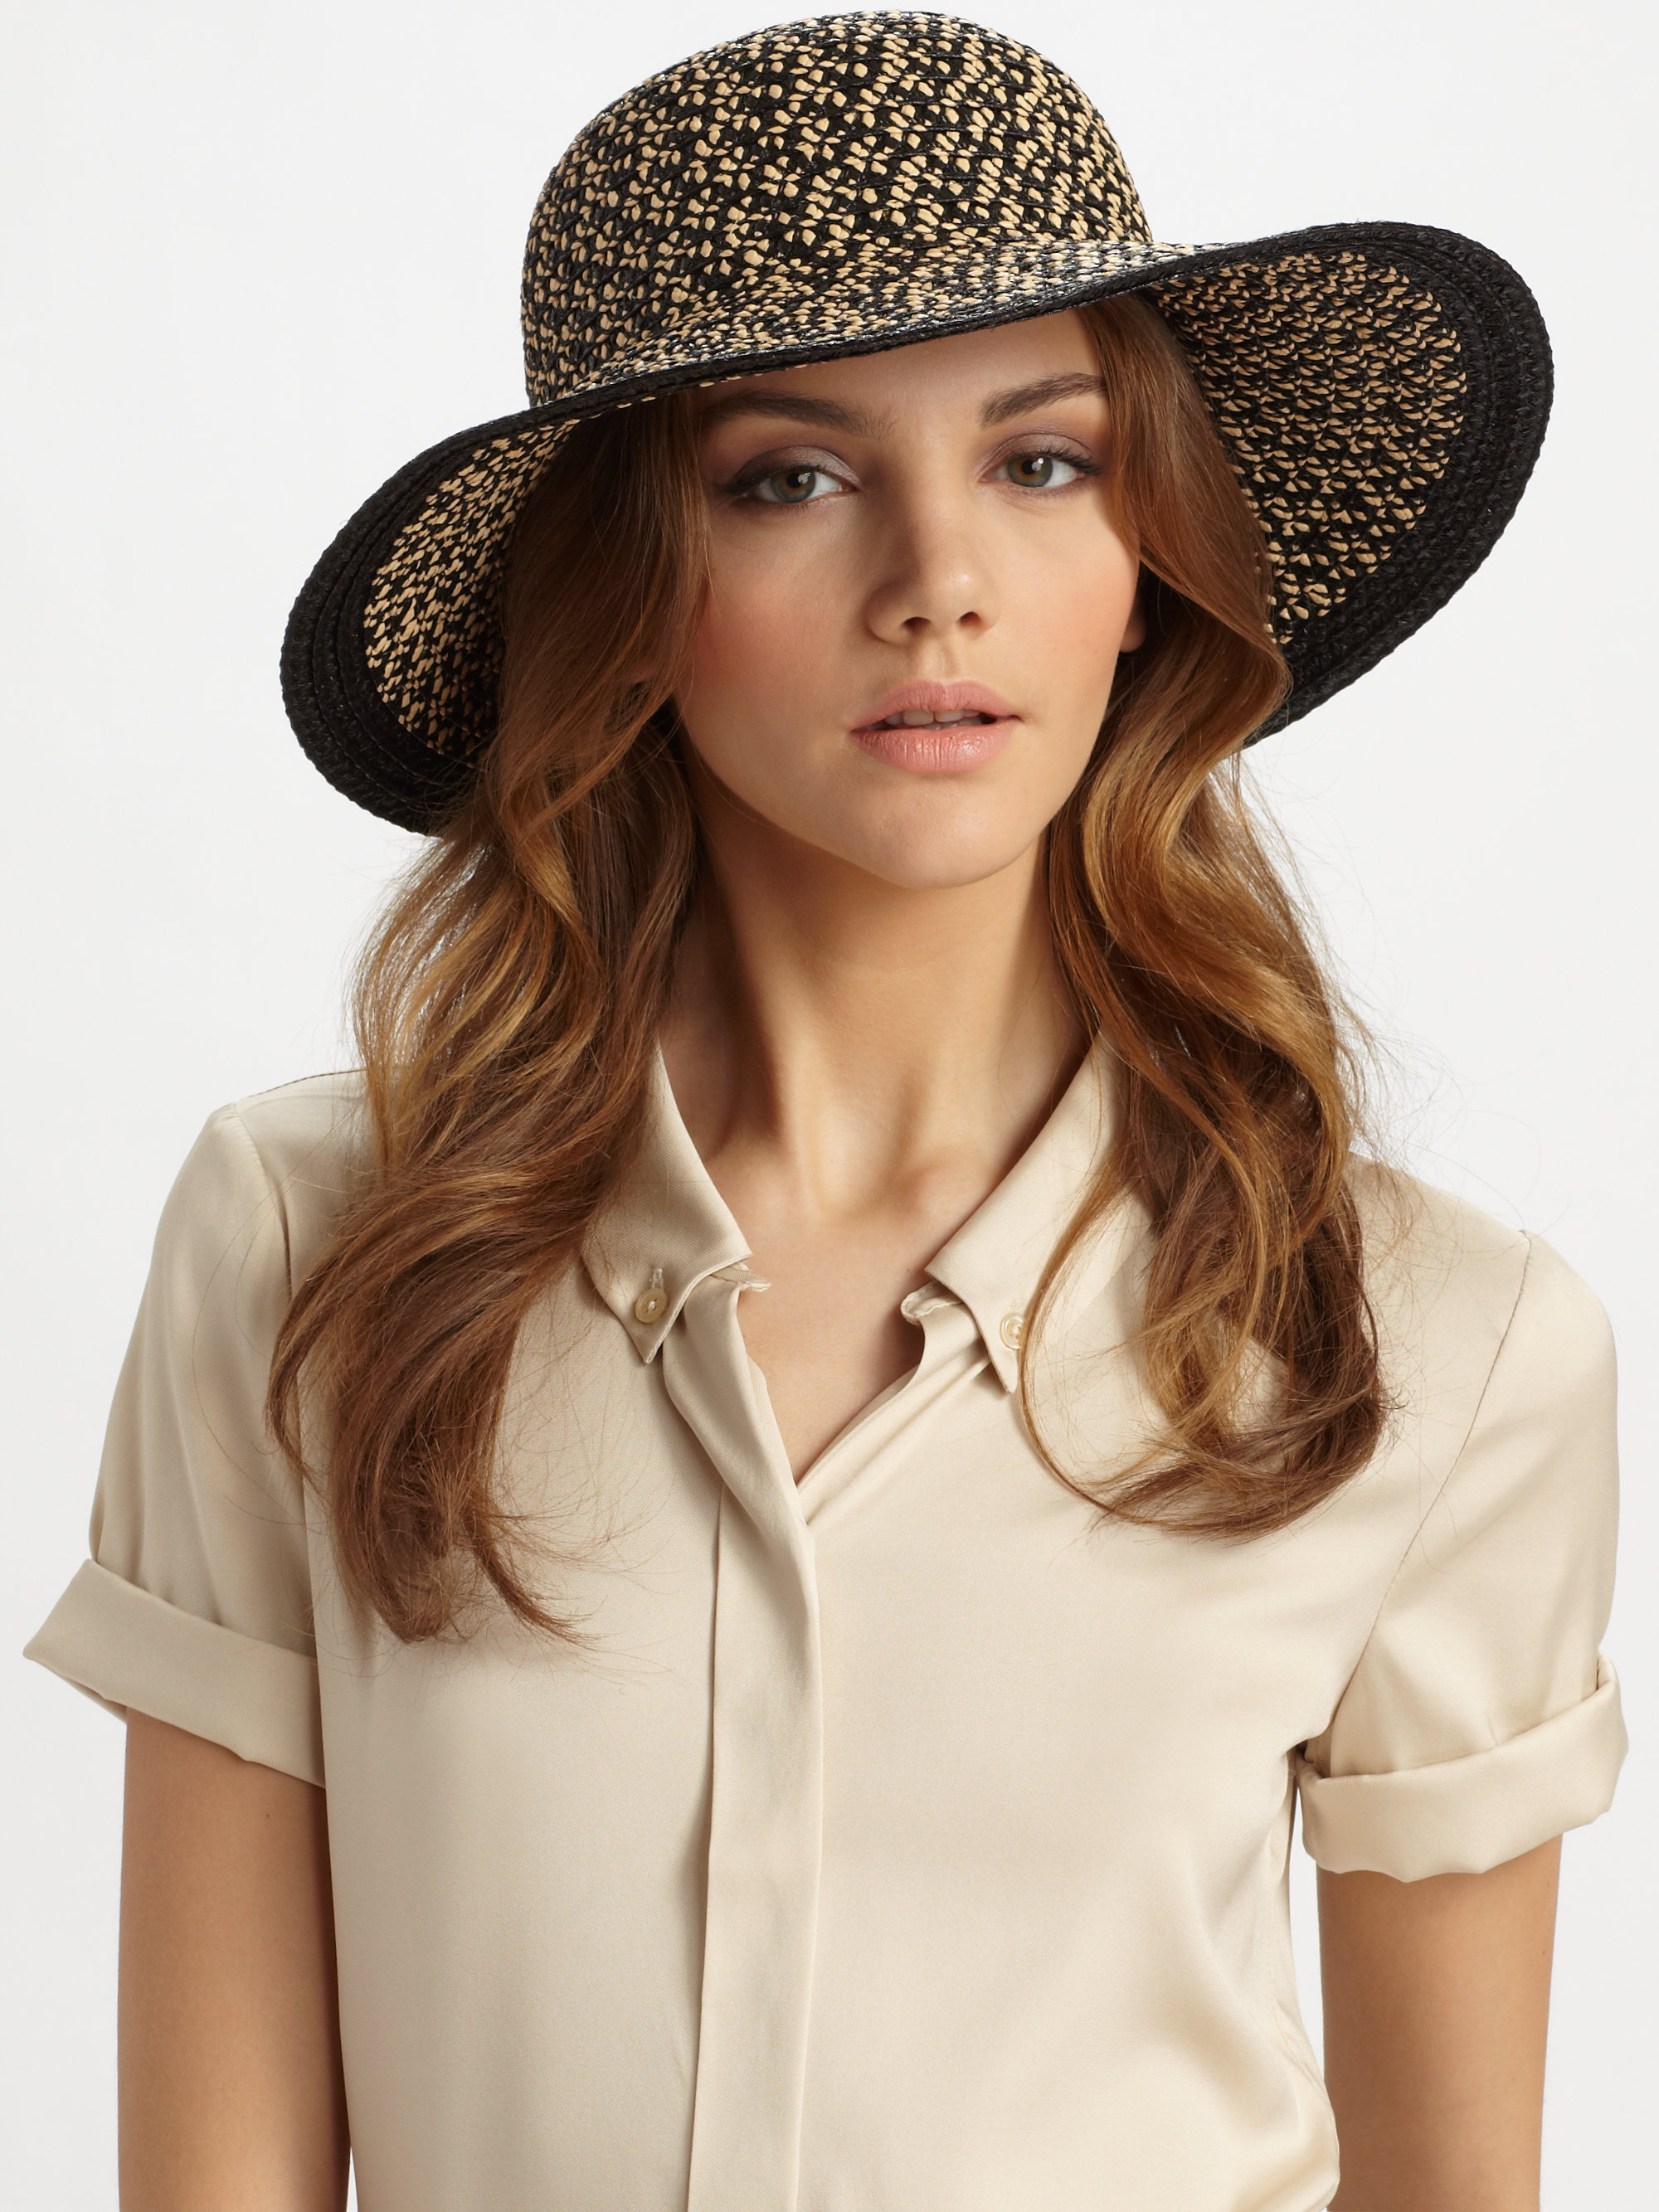 fa830ae6247 Lyst - Eric Javits Down Brim Floppy Hat in Black